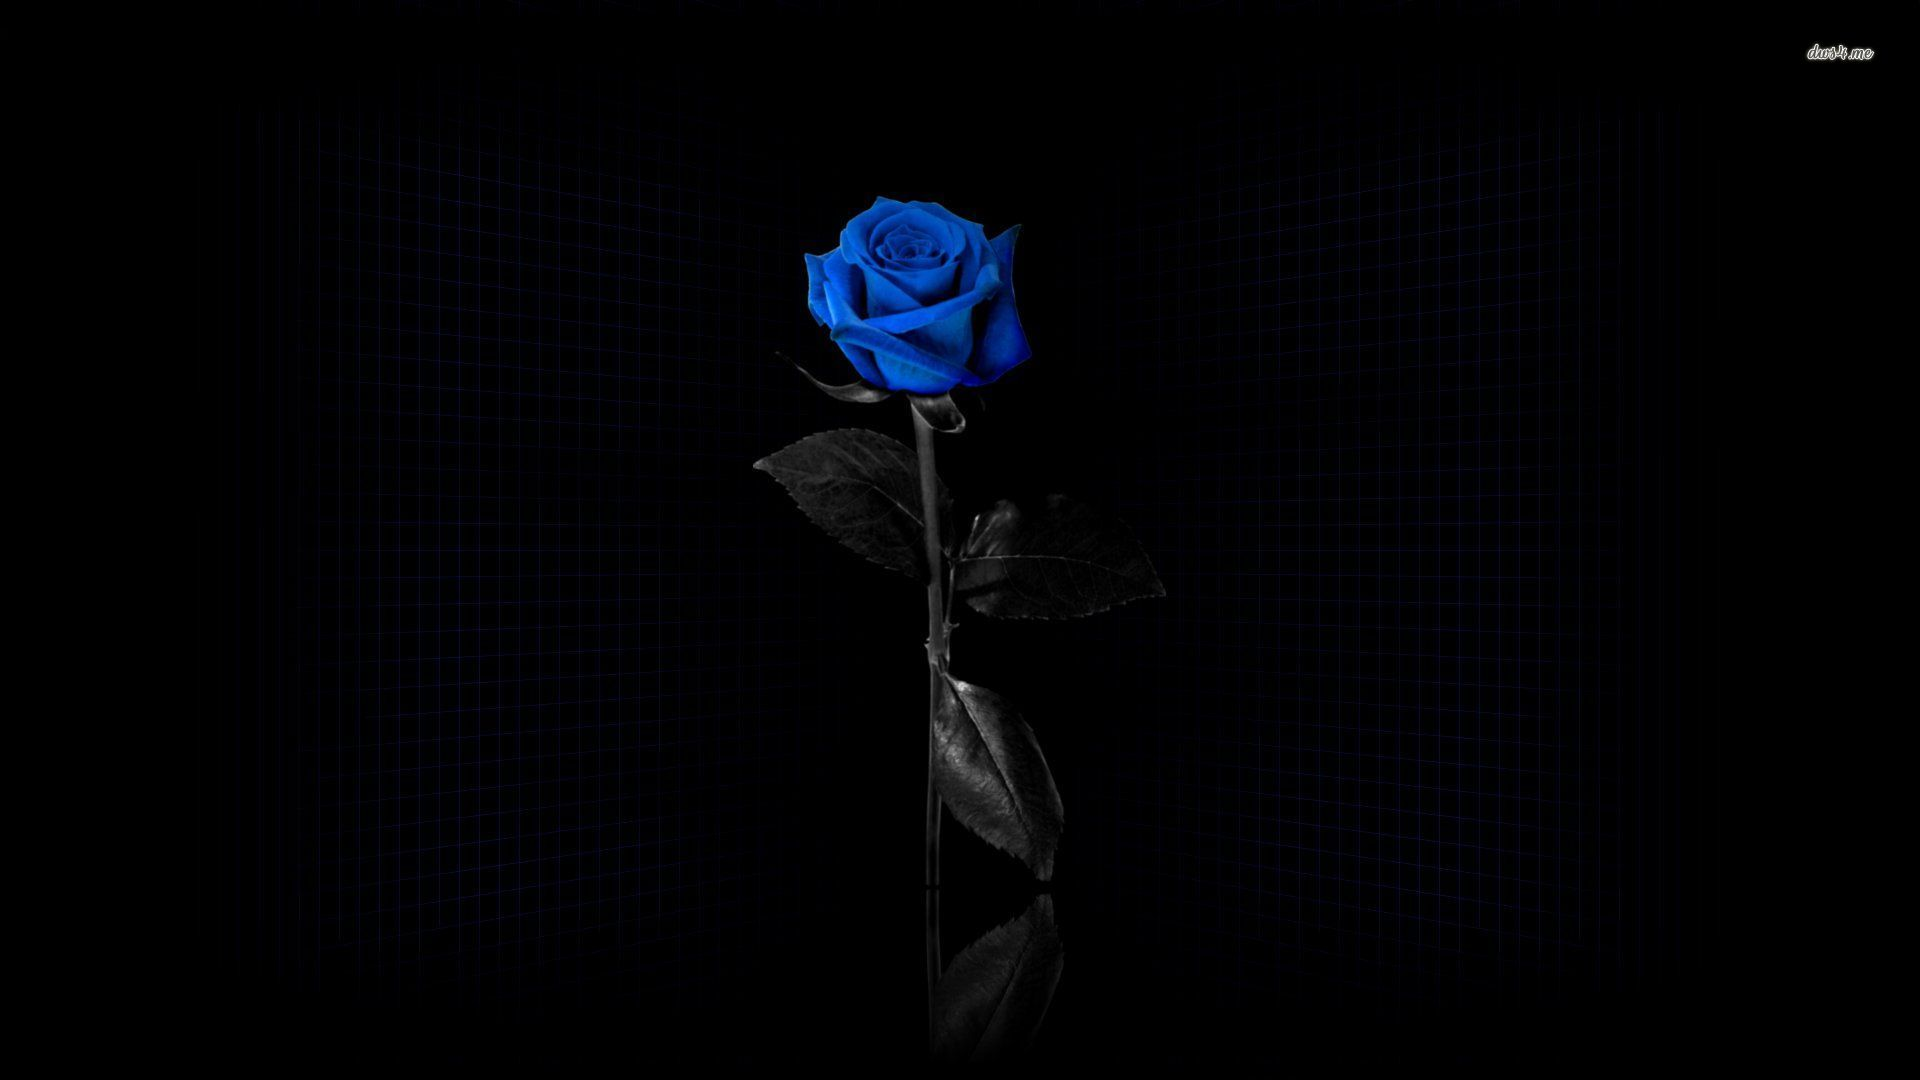 Blue Rose Wallpapers HD Pictures One HD Wallpaper Pictures 1920x1080